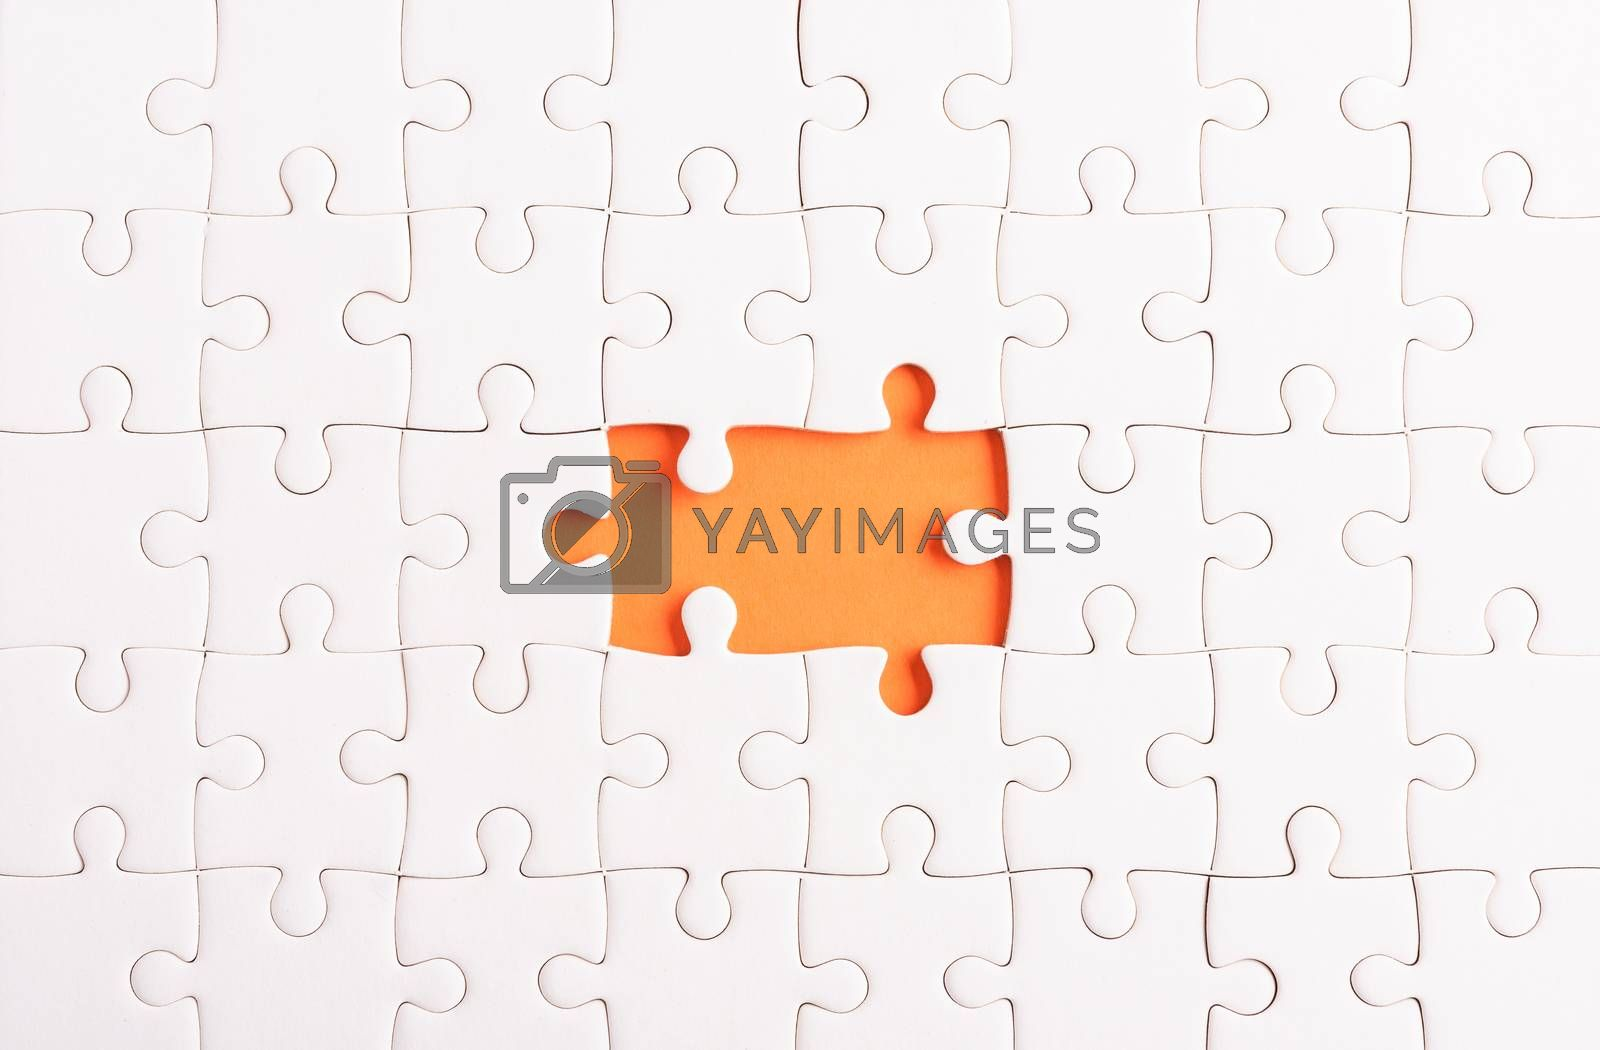 Top view flat lay of paper plain white jigsaw puzzle game texture incomplete or missing piece, studio shot on an orange background, quiz calculation concept